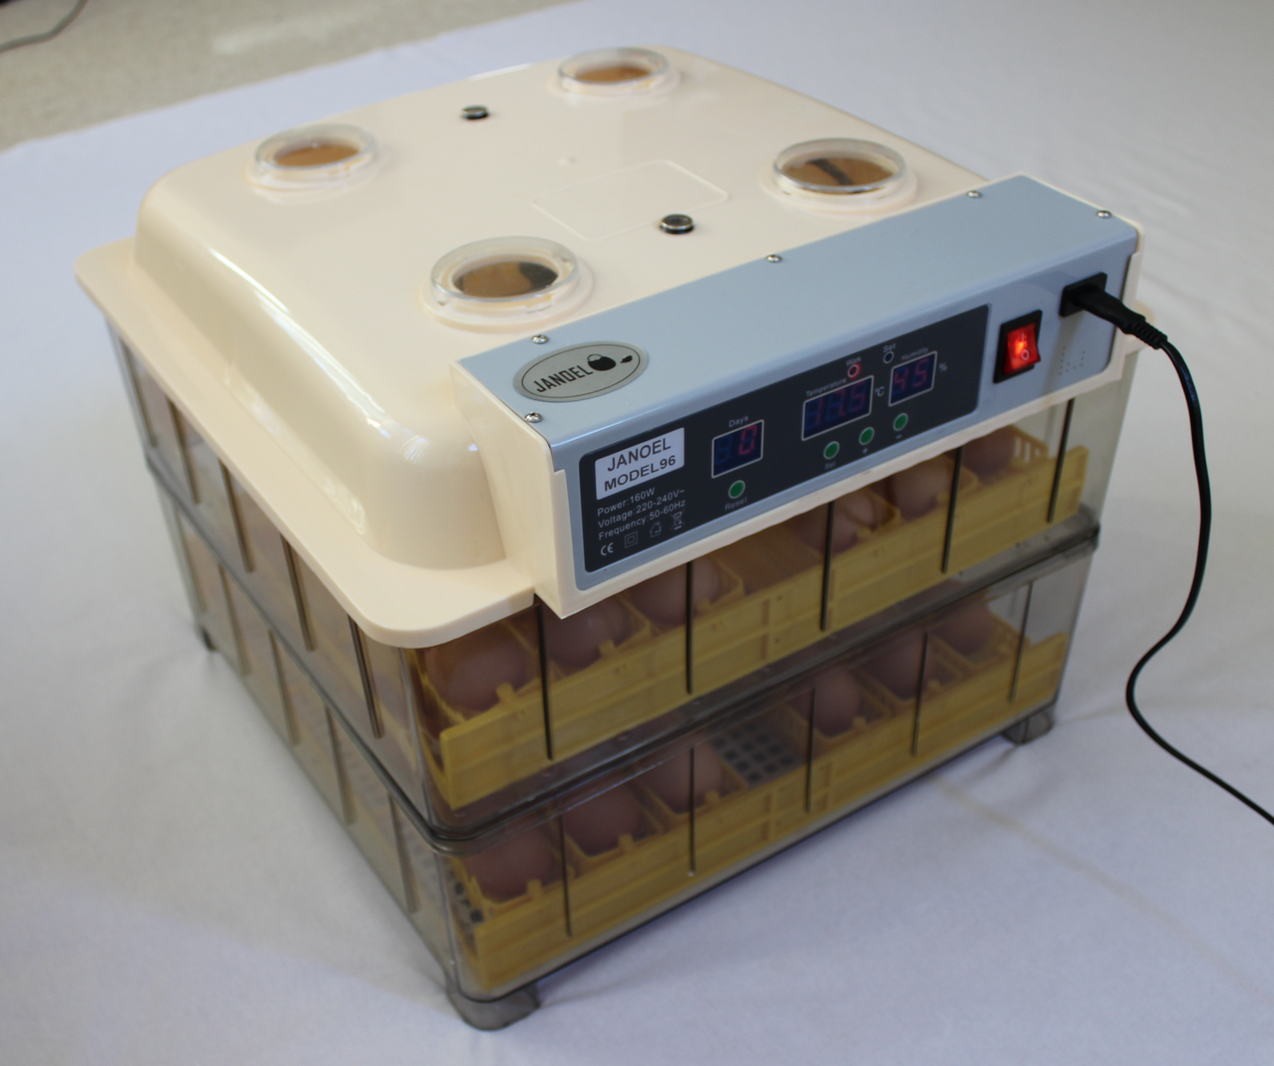 Janoel Model 96 Egg Incubator